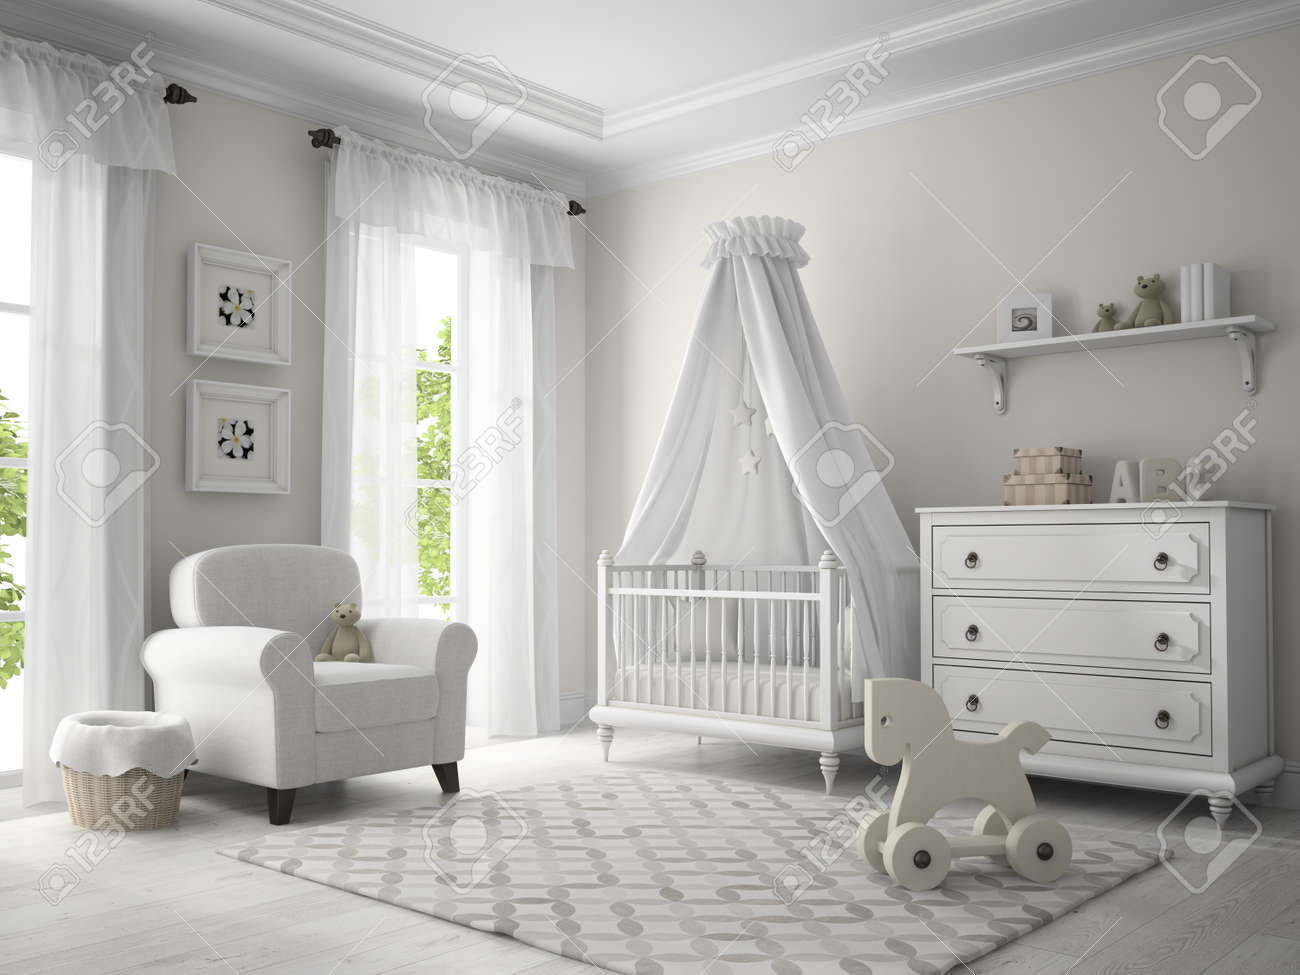 Classic children room white color 3D rendering Stock Photo - 57656725